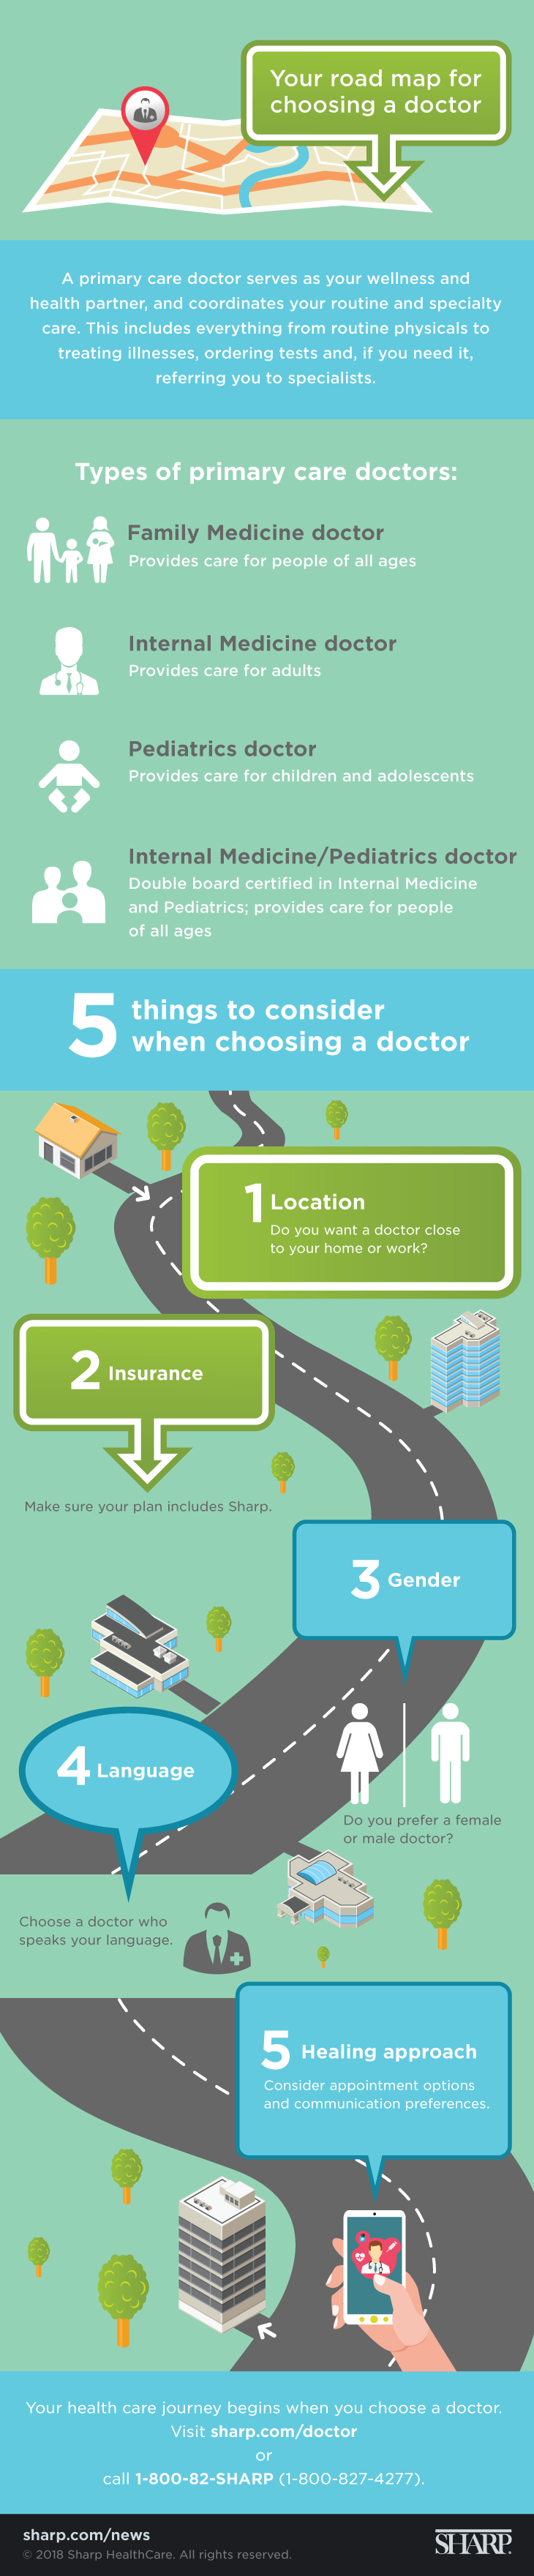 Your road map for choosing a doctor (infographic). Your road map for choosing a doctor. A primary care doctor serves as your wellness and health partner and coordinates your routine and specialty care. This includes everything from routine physicals to treating illnesses, ordering tests and, if you need it, referring you to specialists. There are several types of primary care doctors. A family medicine doctor provides care for people of all ages. An internal medicine doctor provides care for adults. A pediatrics doctor provides care for children and adolescents. An internal medicine/pediatrics doctor is double board certified in internal medicine and pediatrics and provides care for people of all ages. There are five things to consider when choosing a doctor: 1. Location – Do you want a doctor close to your home or work? 2. Insurance – Make sure your plan includes Sharp. 3. Gender – Do you prefer a female or male doctor? 4. Language – Choose a doctor who speaks your language. 5. Healing approach – Consider appointment options and communication preferences. Your healthcare journey begins when you choose a doctor. Visit sharp.com/doctor or call 1-800-82-SHARP (1-800-827-4277).